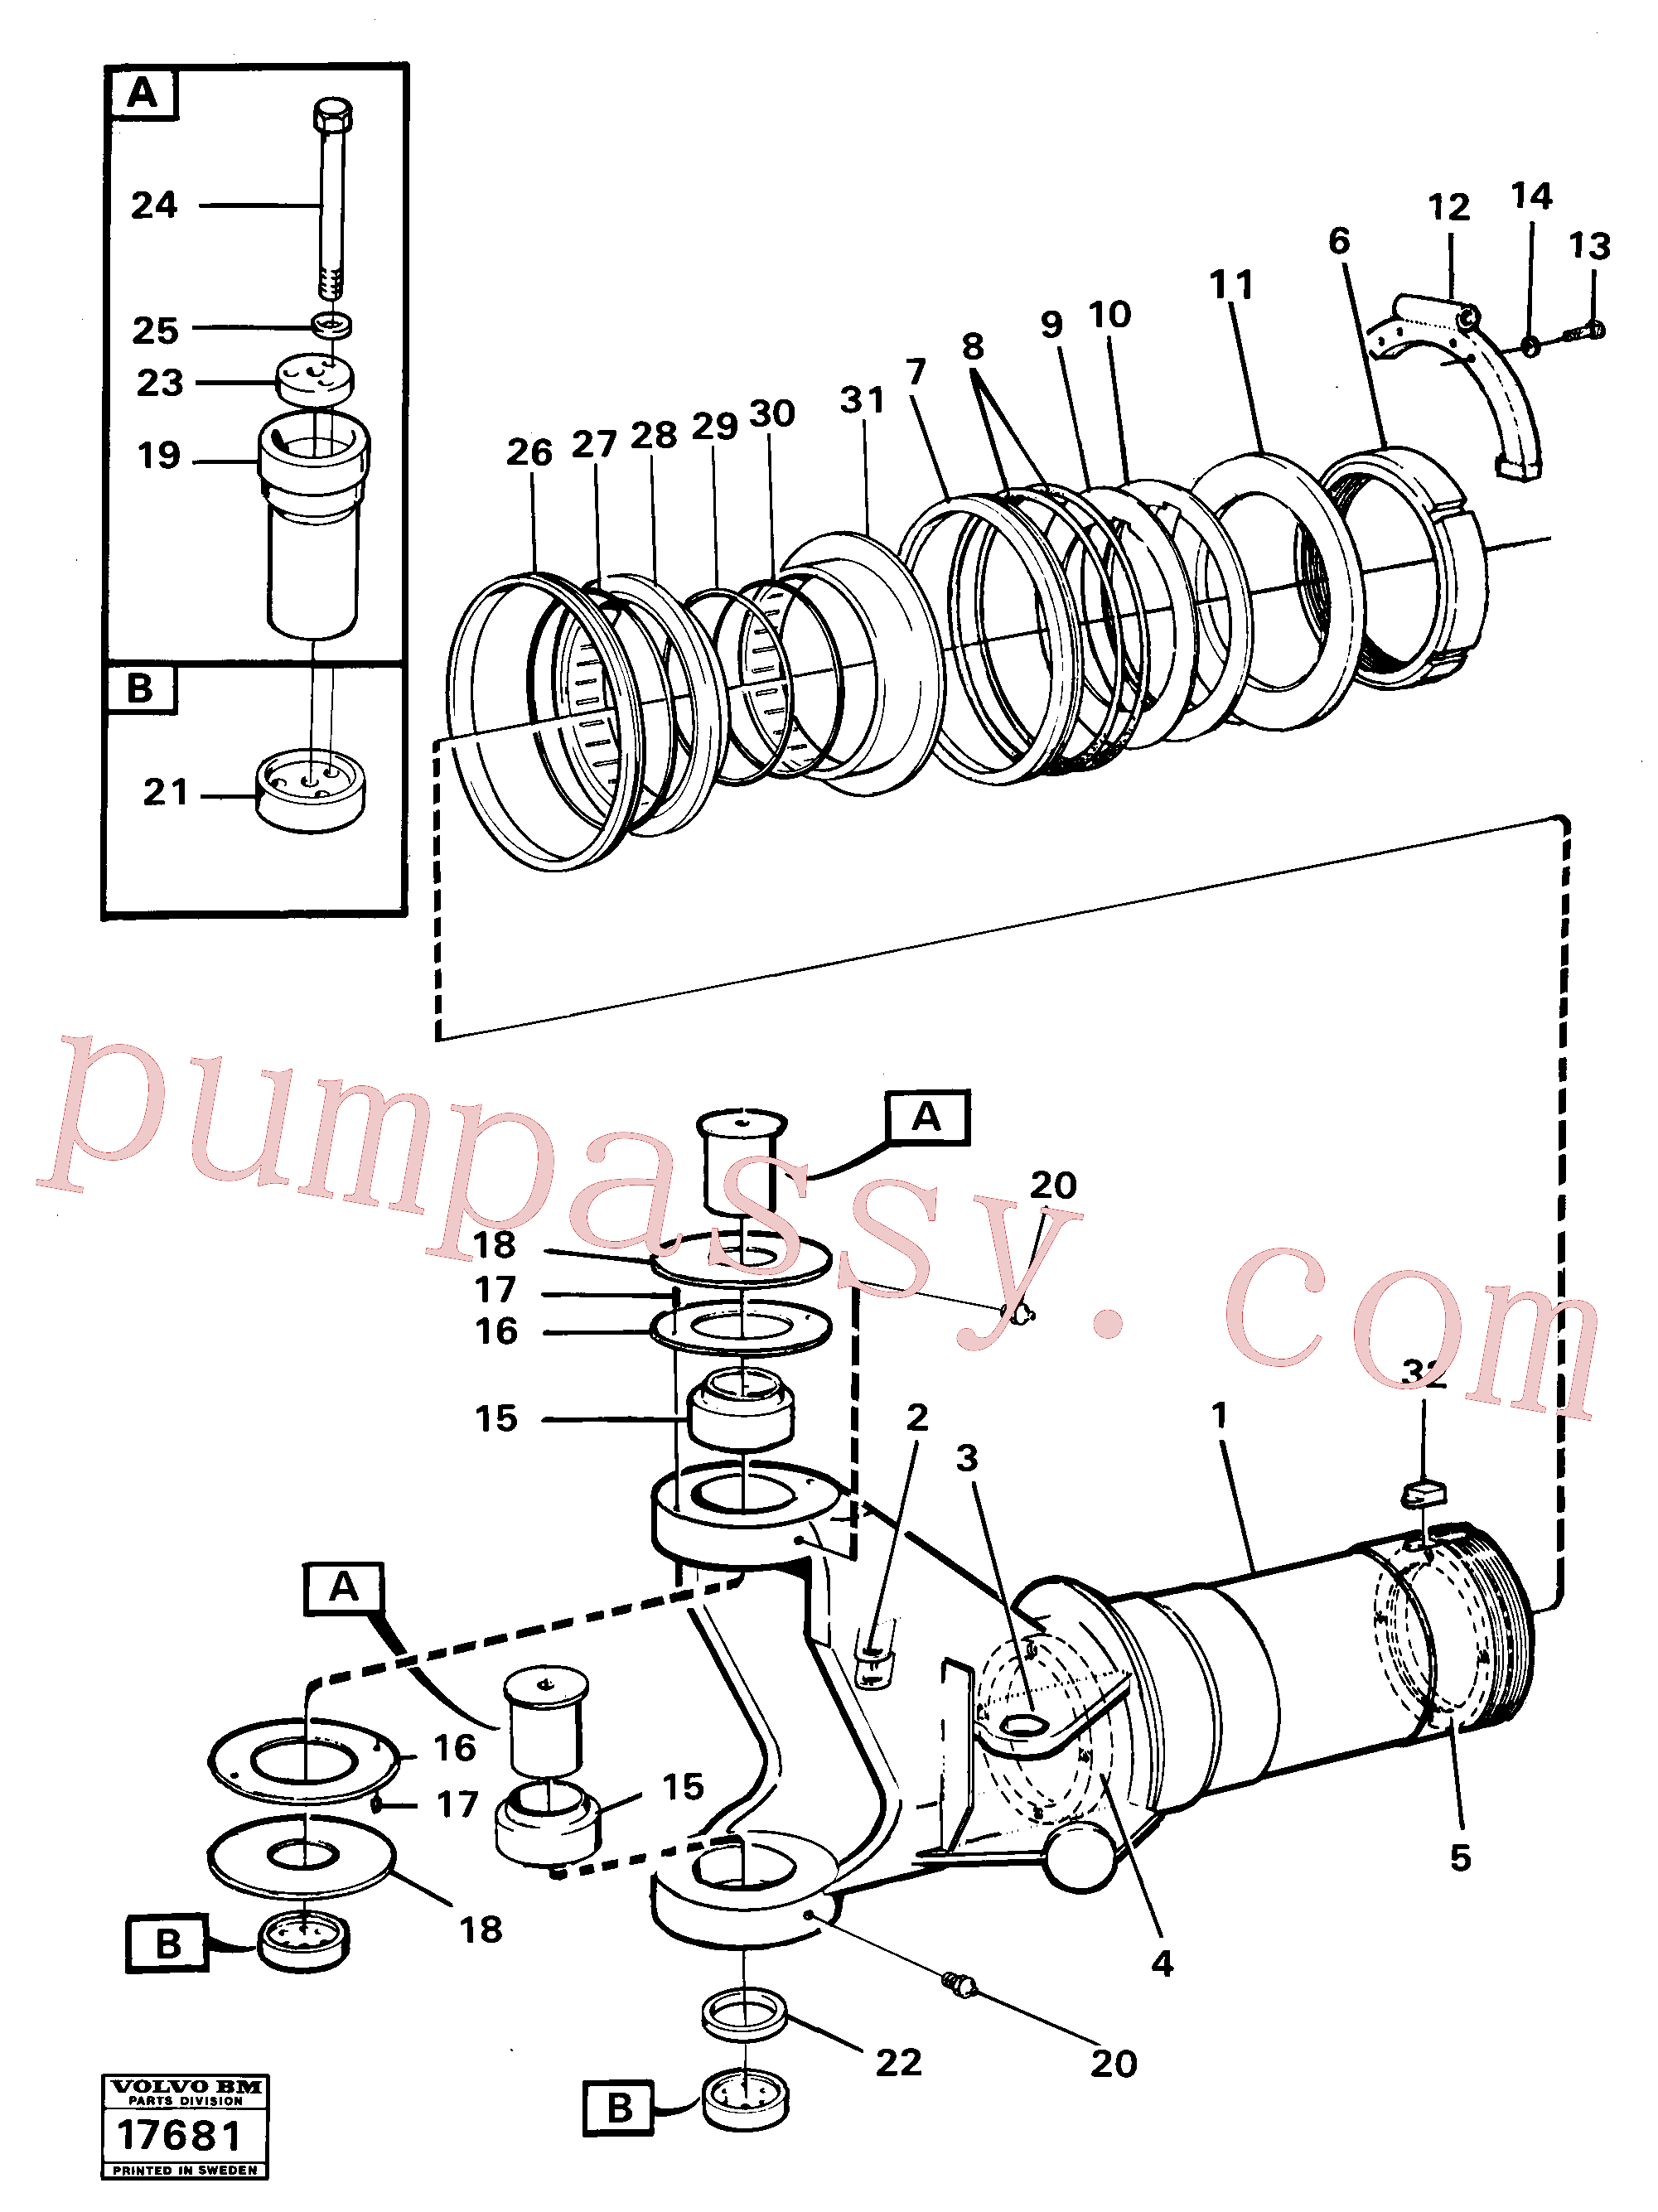 CH29A-02 for Volvo Hitch 6x6(17681 assembly)